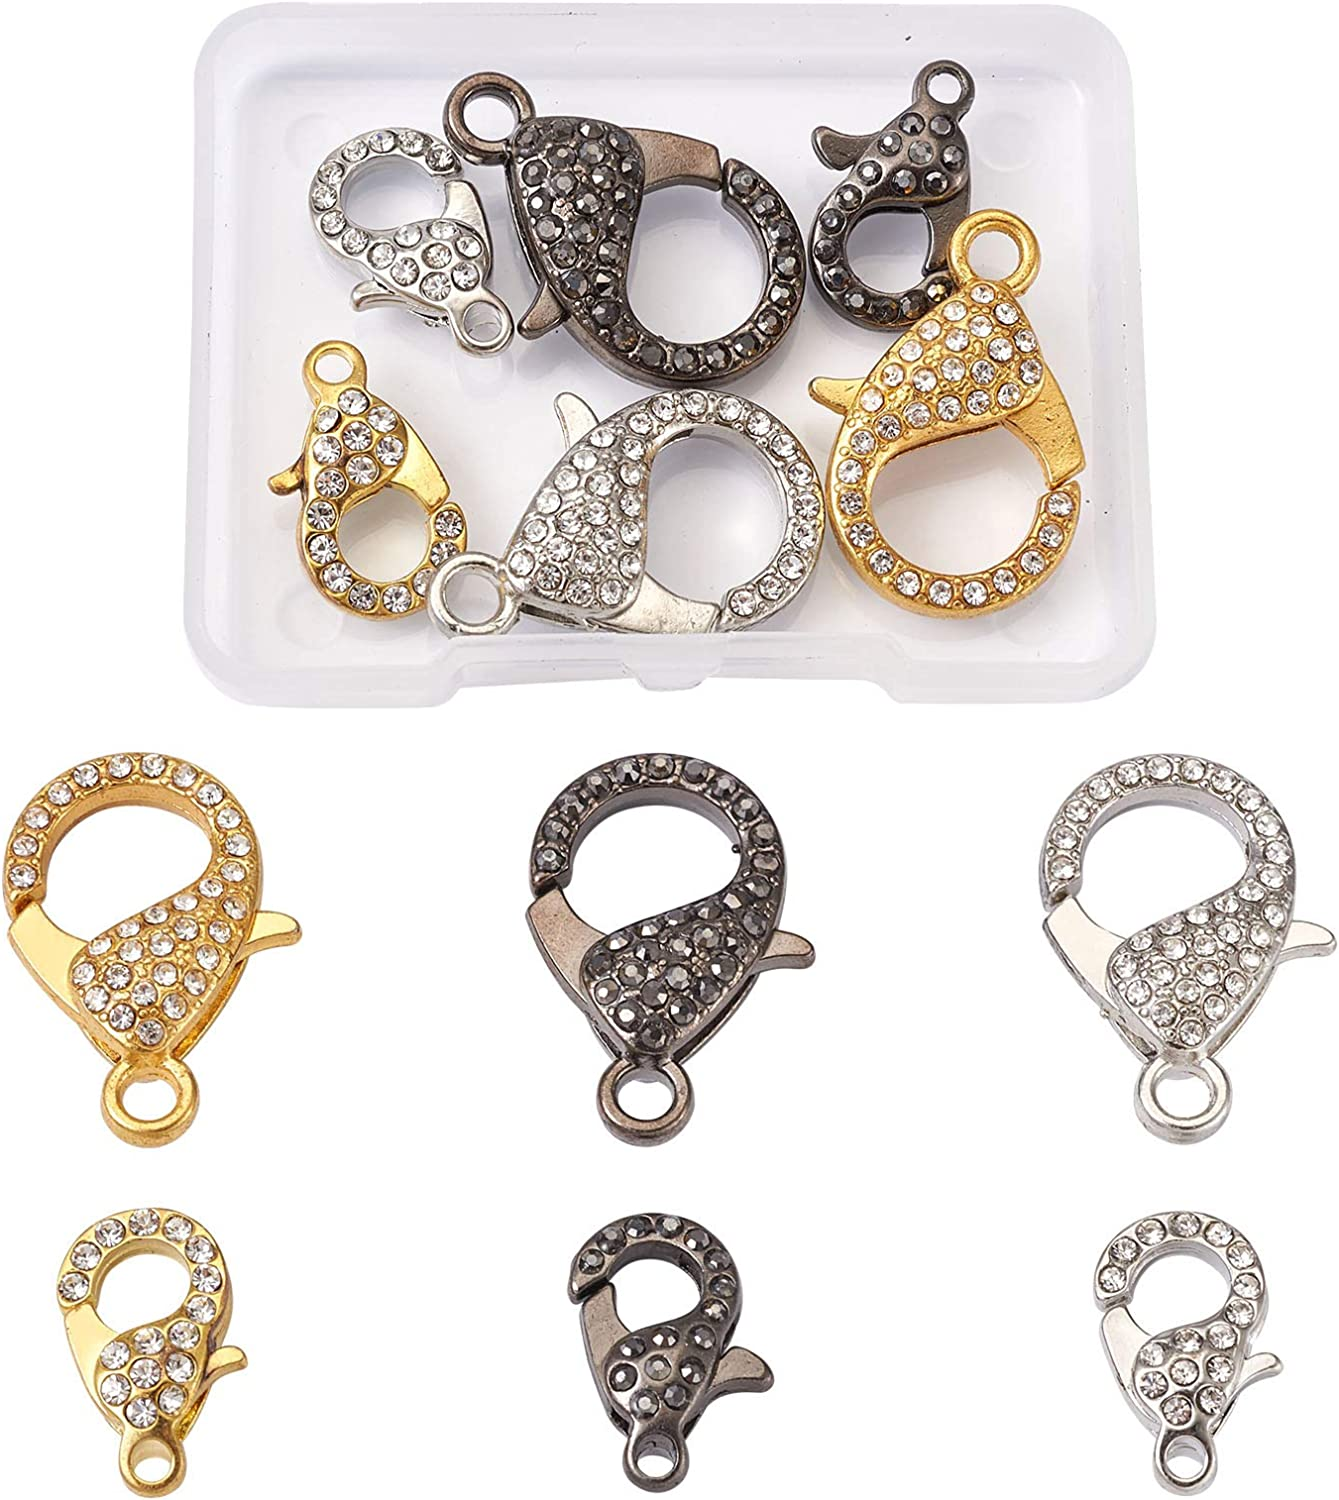 Pandahall 6pcs Branded goods Rhinestone Lobster Claw Metal 2 Clasps Sizes Sale Special Price Lany